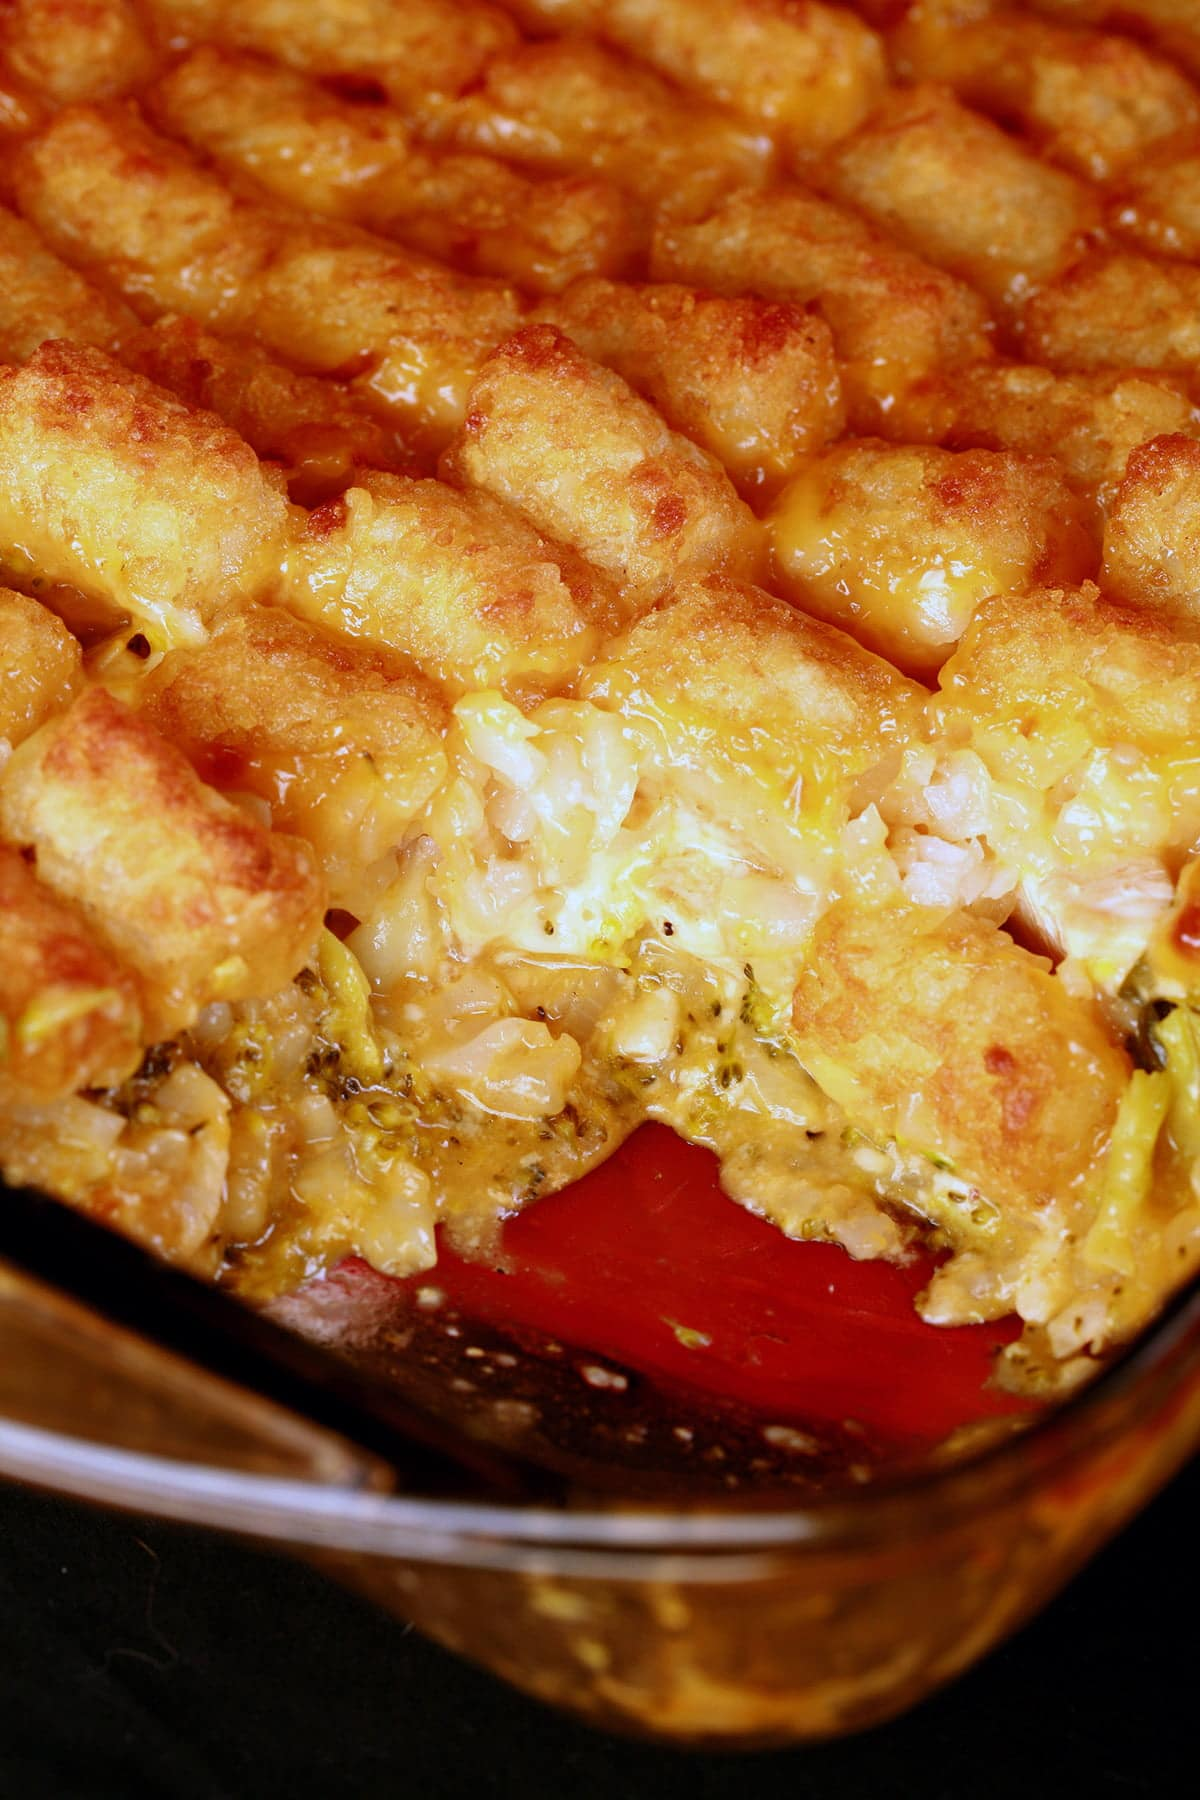 Close up view of a casserole dish with tater tot hot dish in it. One serving has been taken out, so the filling is visible.